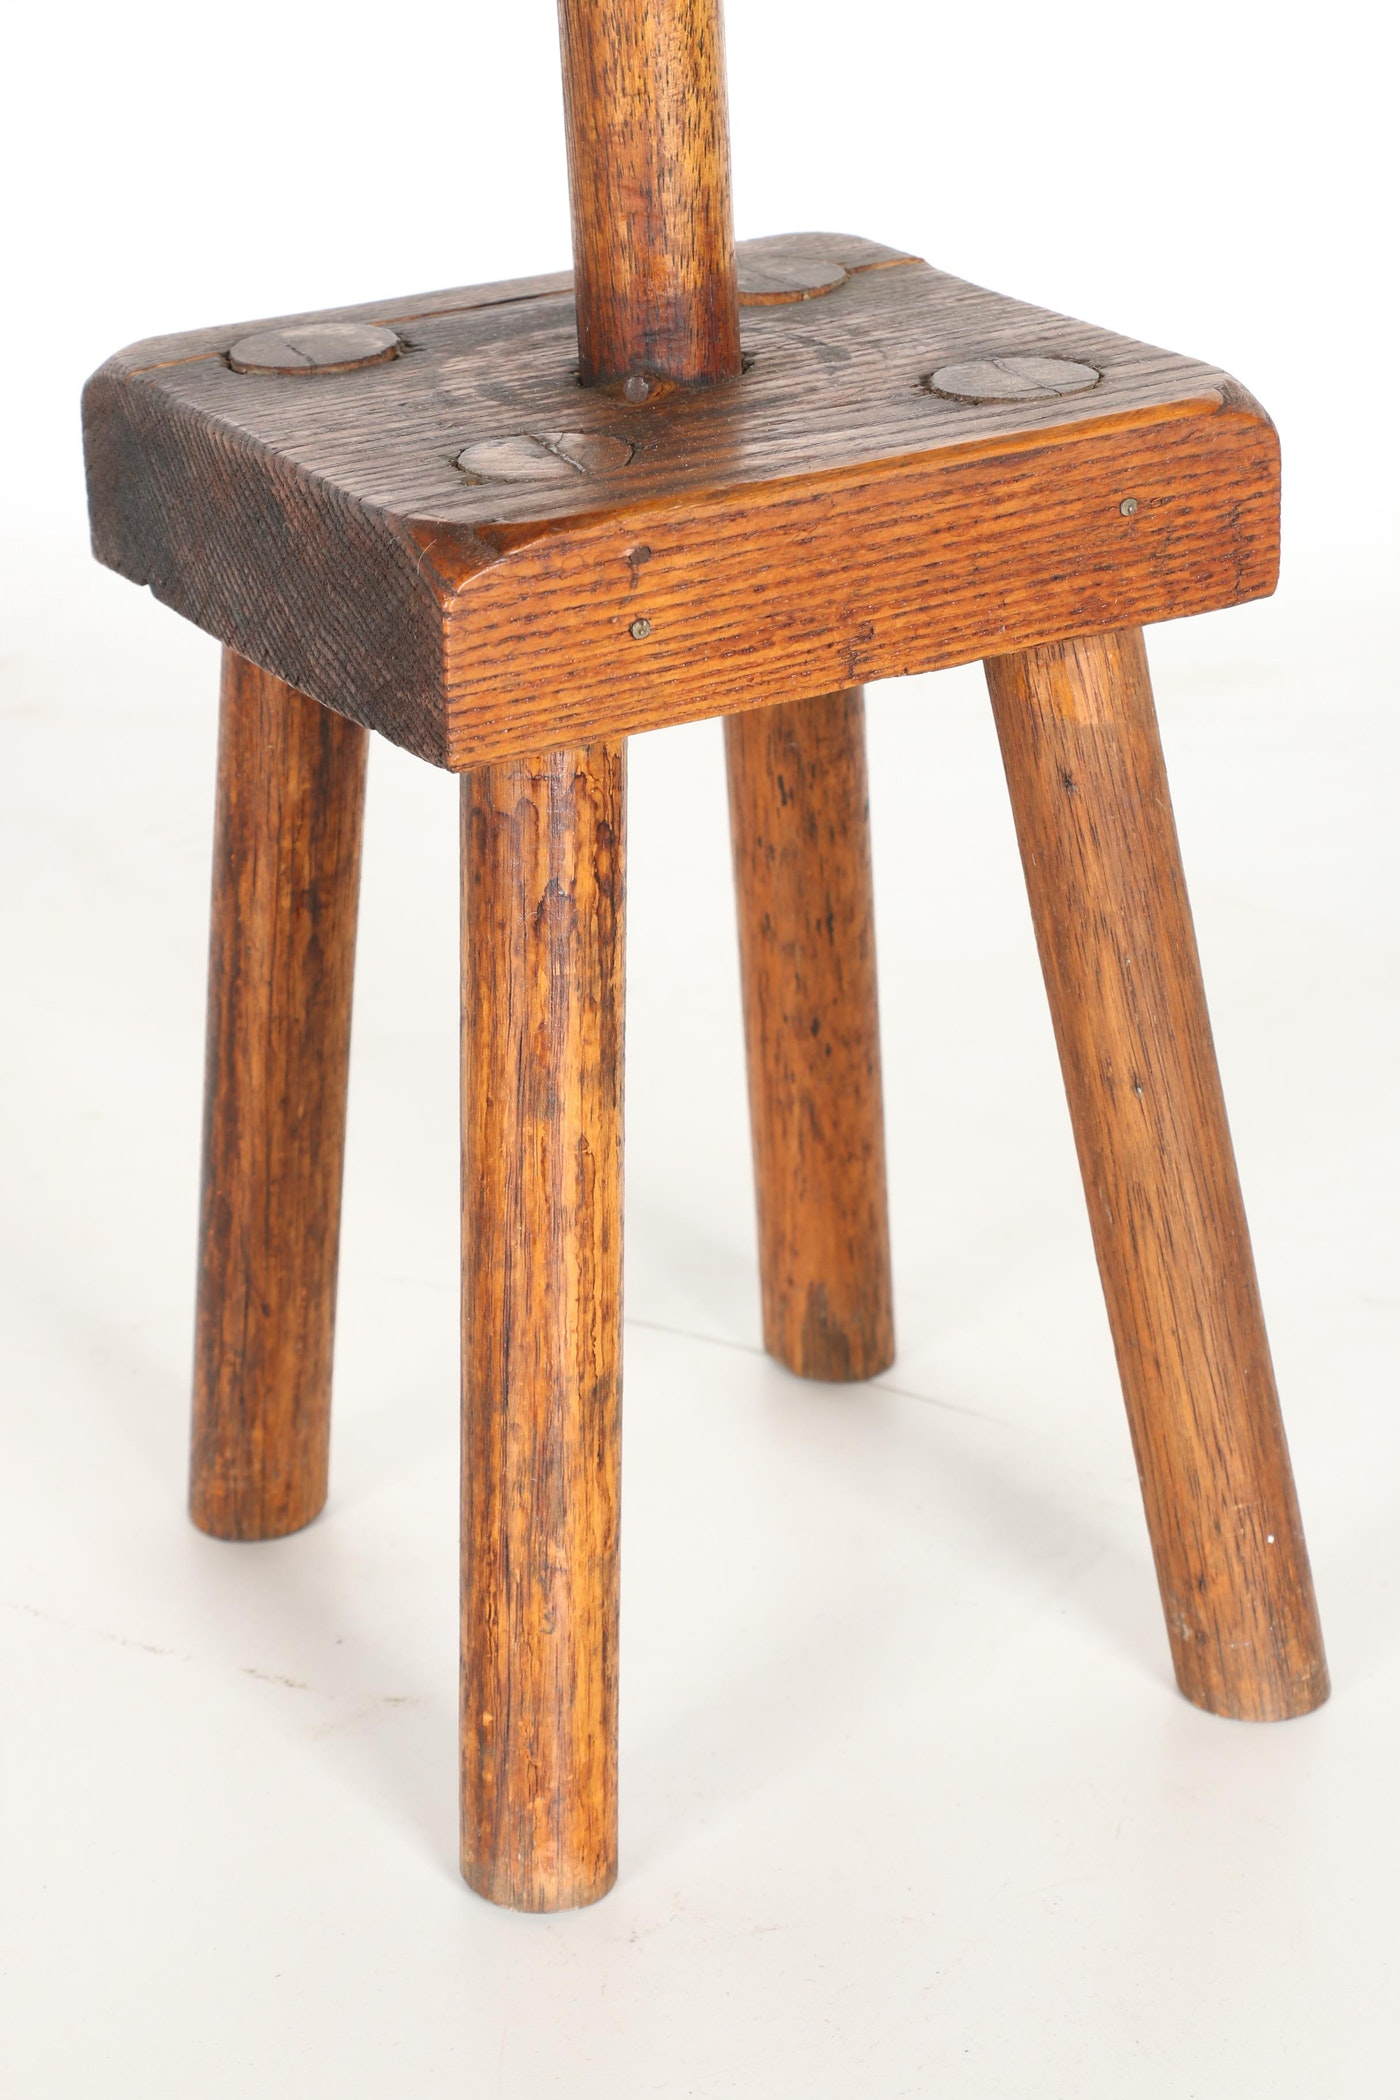 Antique Wooden Dough Bowl With Stand Ebth